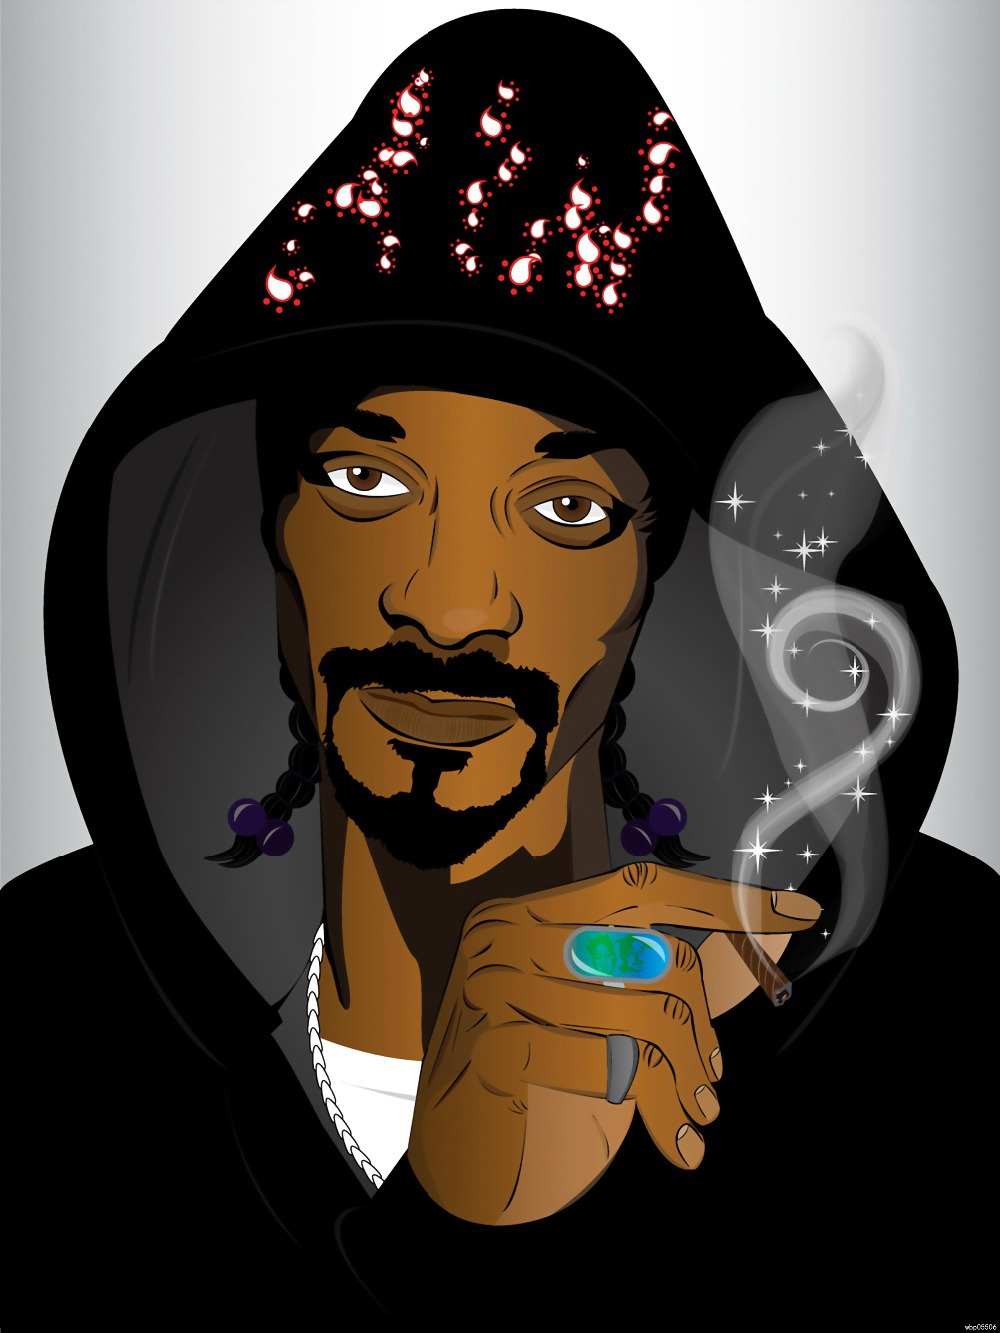 thestudentphysicaltherapis anime snoop dogg - HD1000×1333